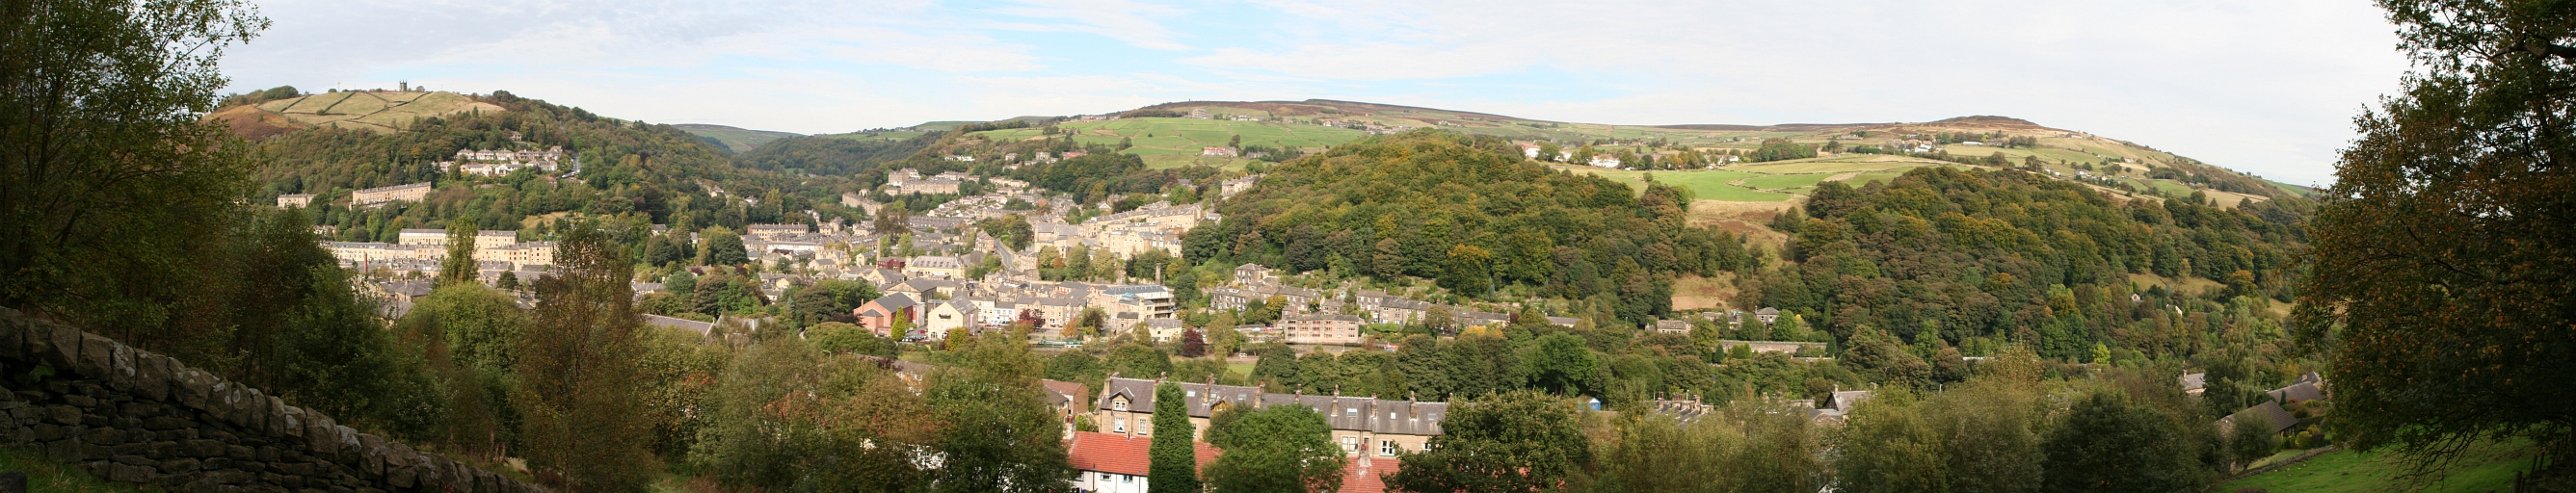 Panorama Hebden Bridge, West Yorkshire